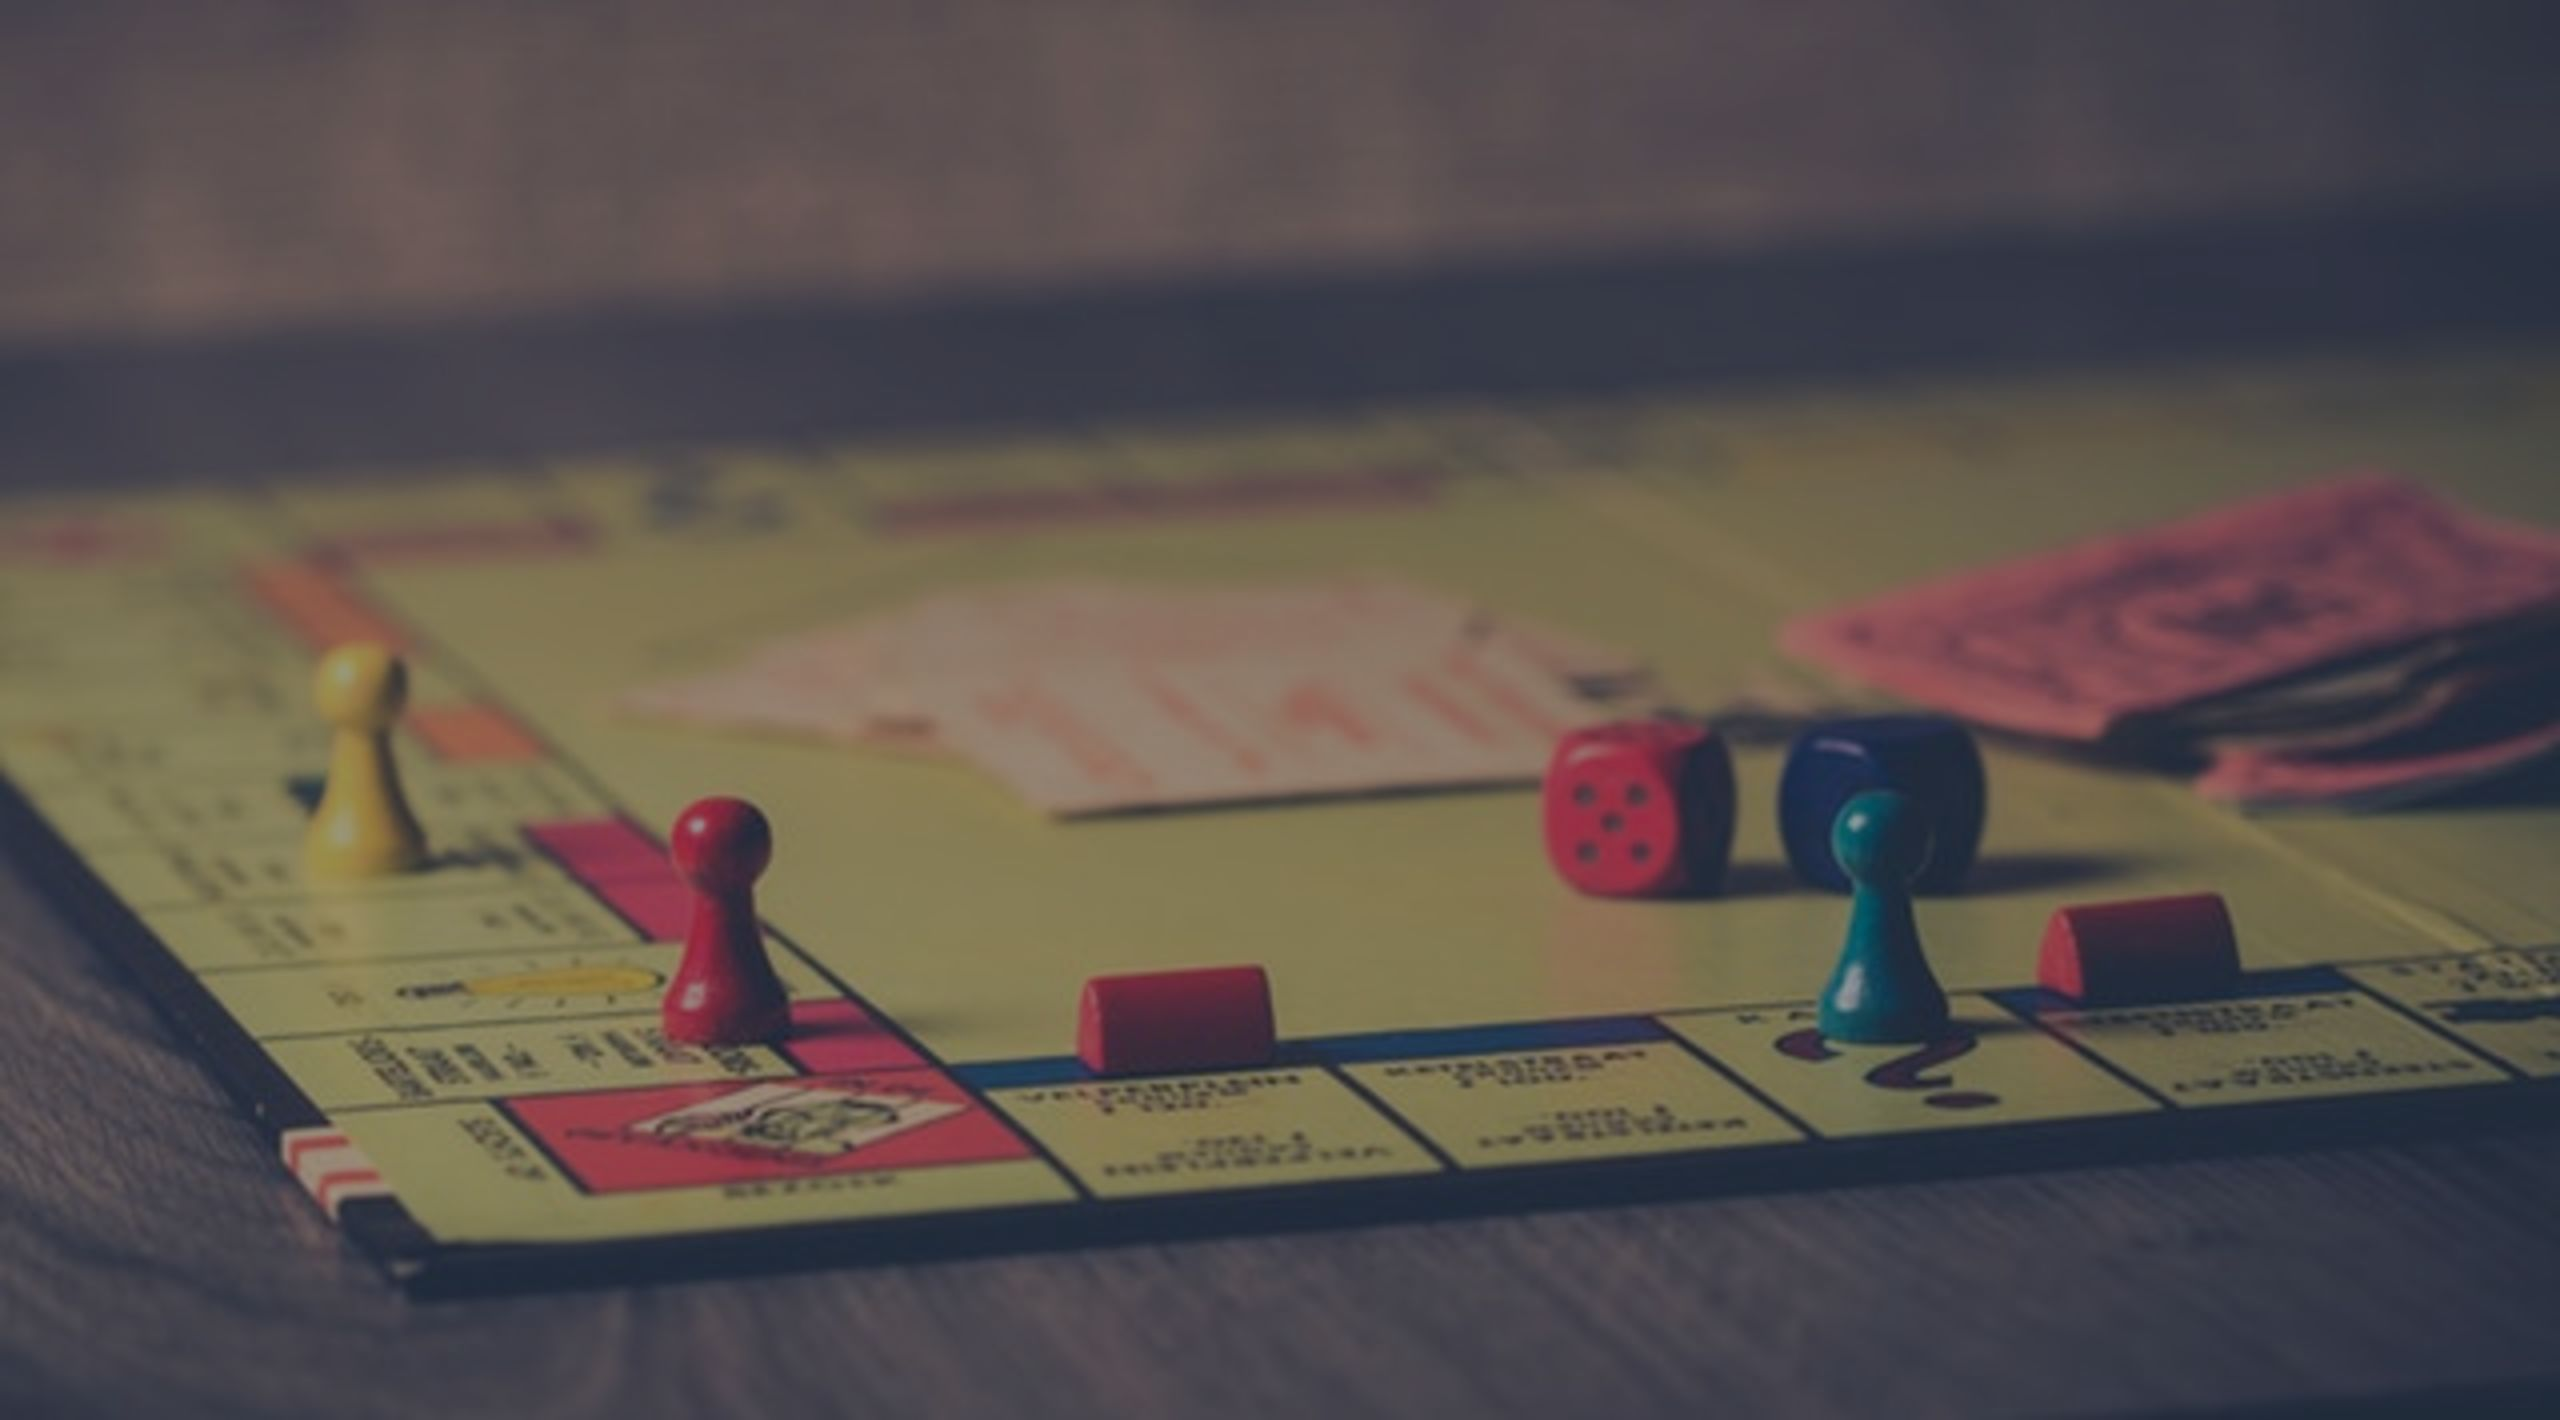 8 board games to give and play for Christmas!